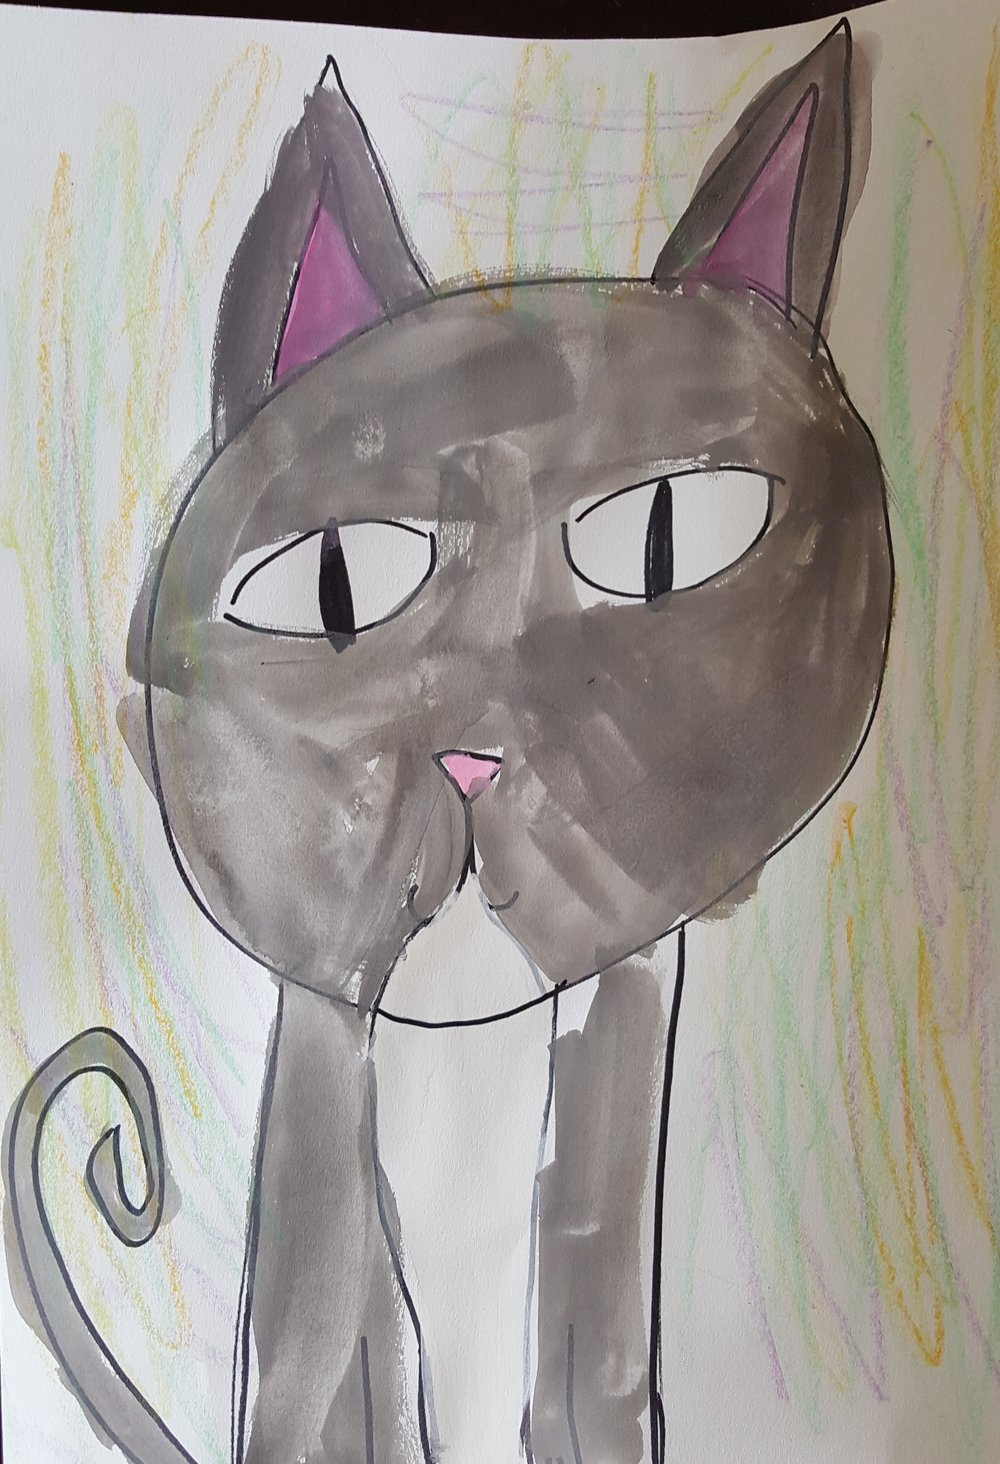 Eden, age 8 (painting of her kitten Nosy)